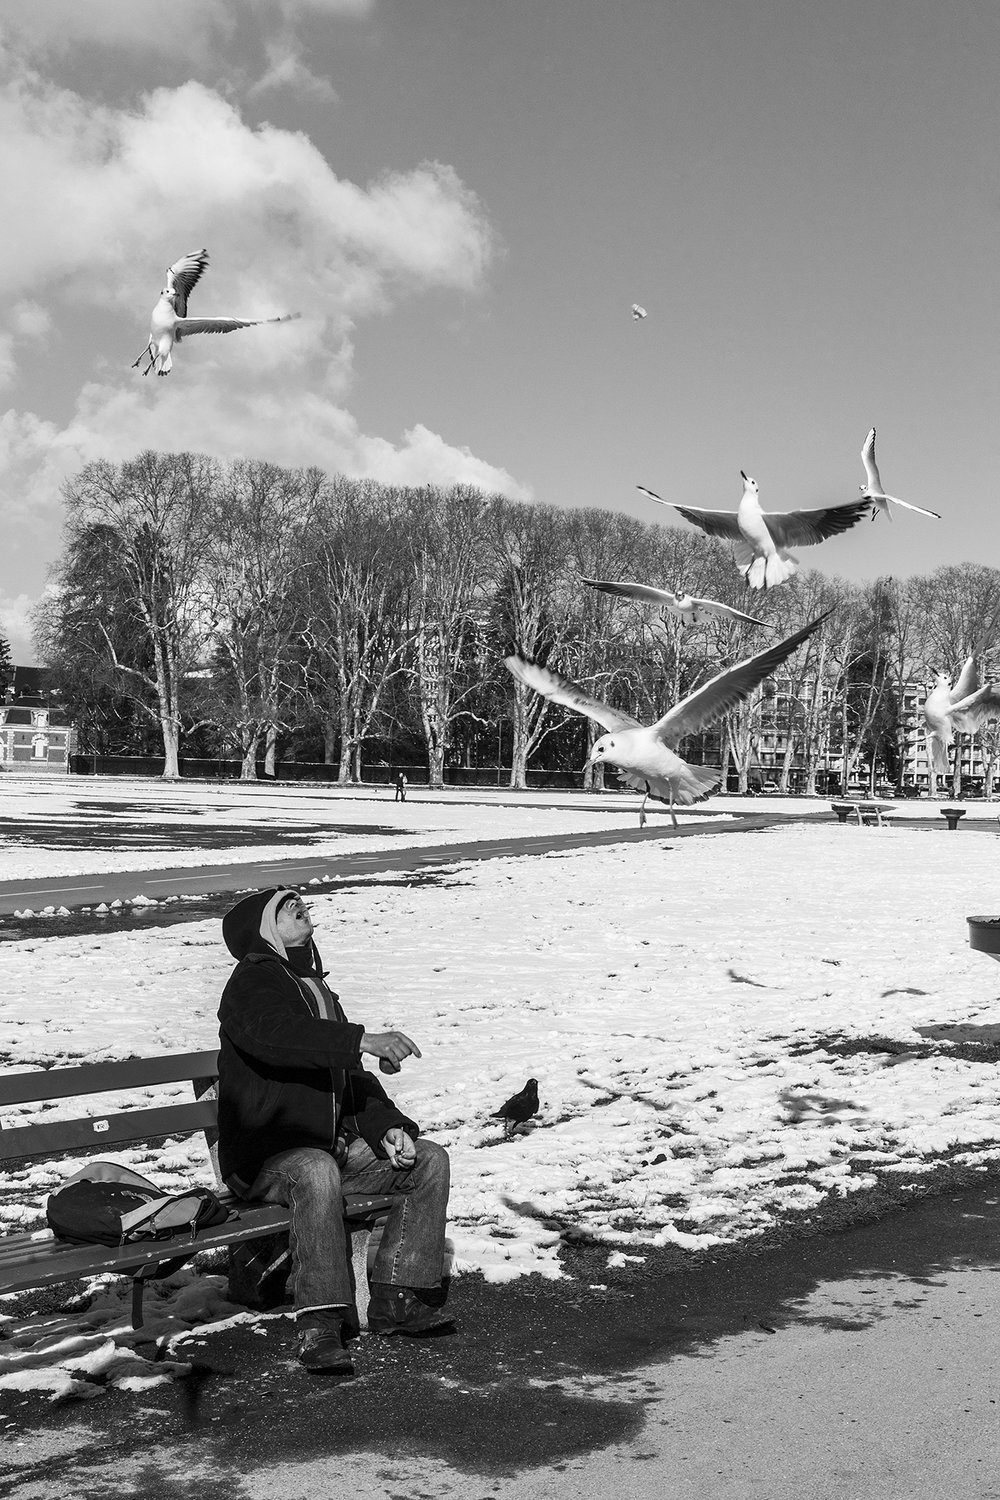 mouettes-Annecy-février-2013.jpg